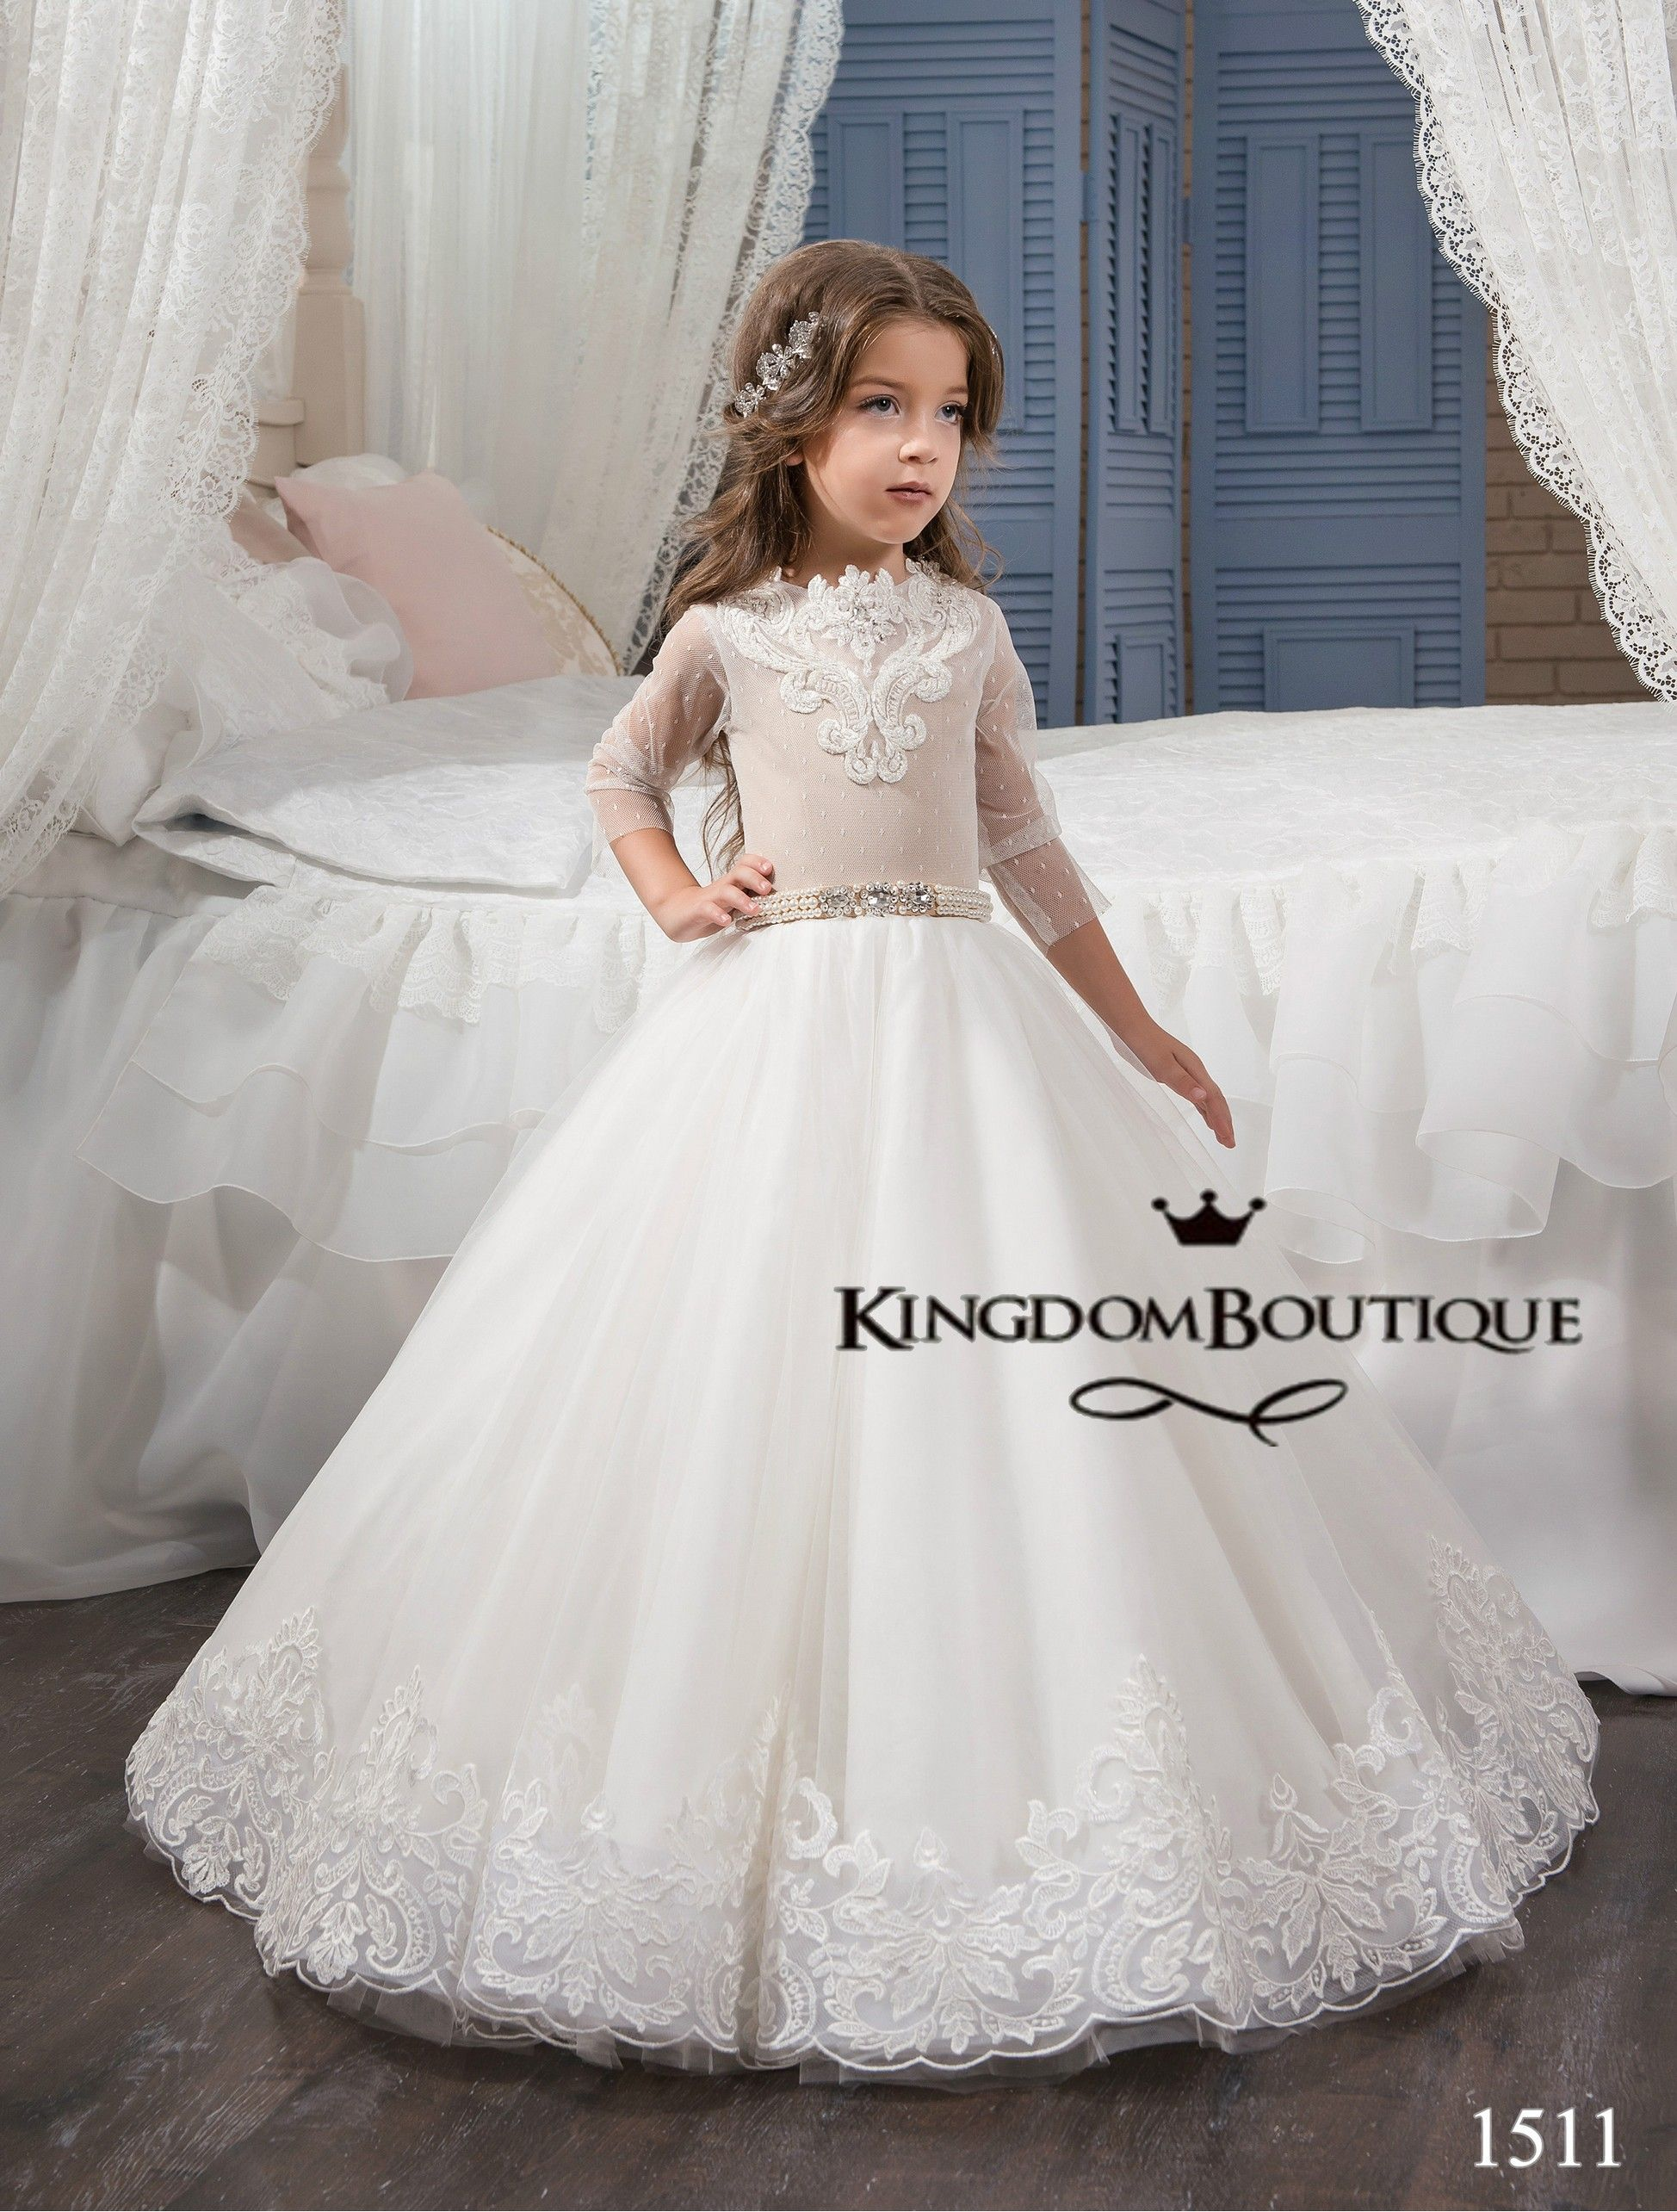 Cappuccino Kingdom Boutique children's gowns for special events ...